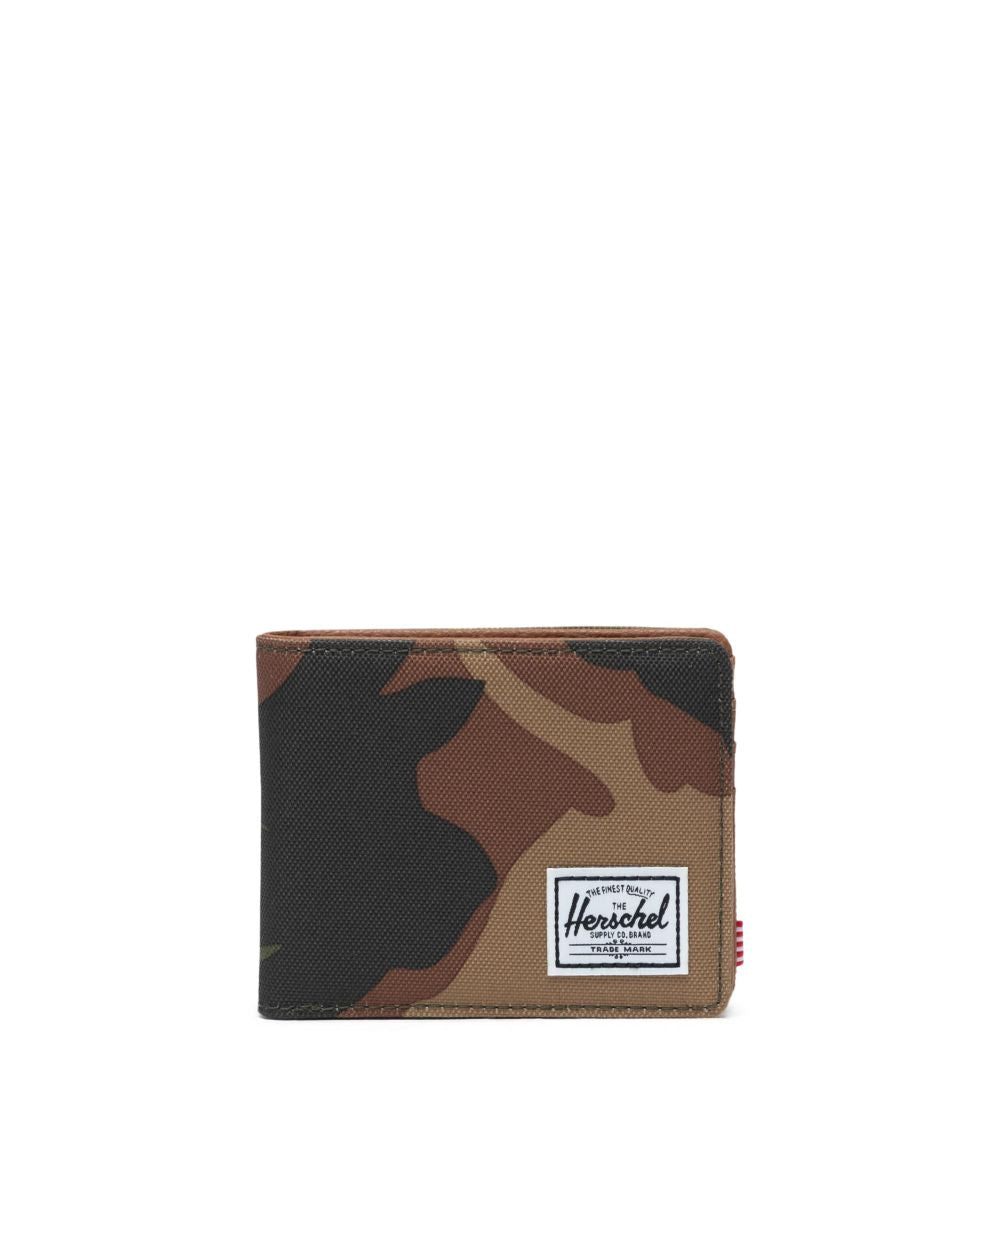 Hank+ Wallet (Woodland Camo)